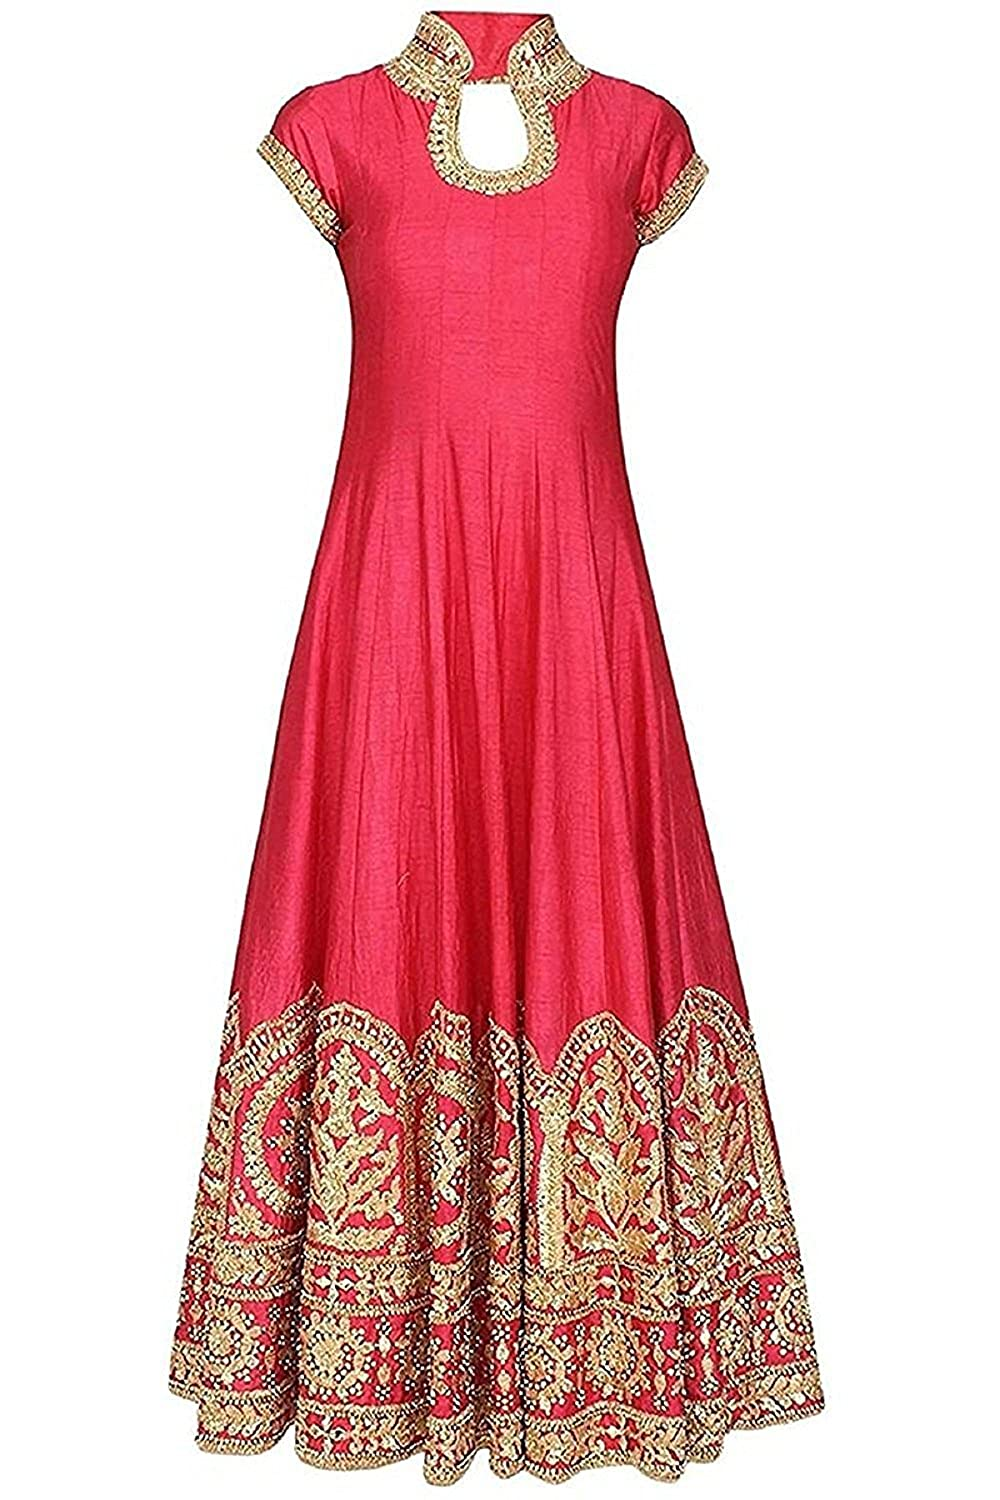 Buy Skyward Creation Coral Red Color Latest Designer Party Wear Traditional Indo Western Long Gown Semi Stitched Free Size For Marriage And Wedding Ceremony On Benglori Silk With Heavy Embroidery Work For Girls Women Premium Quality